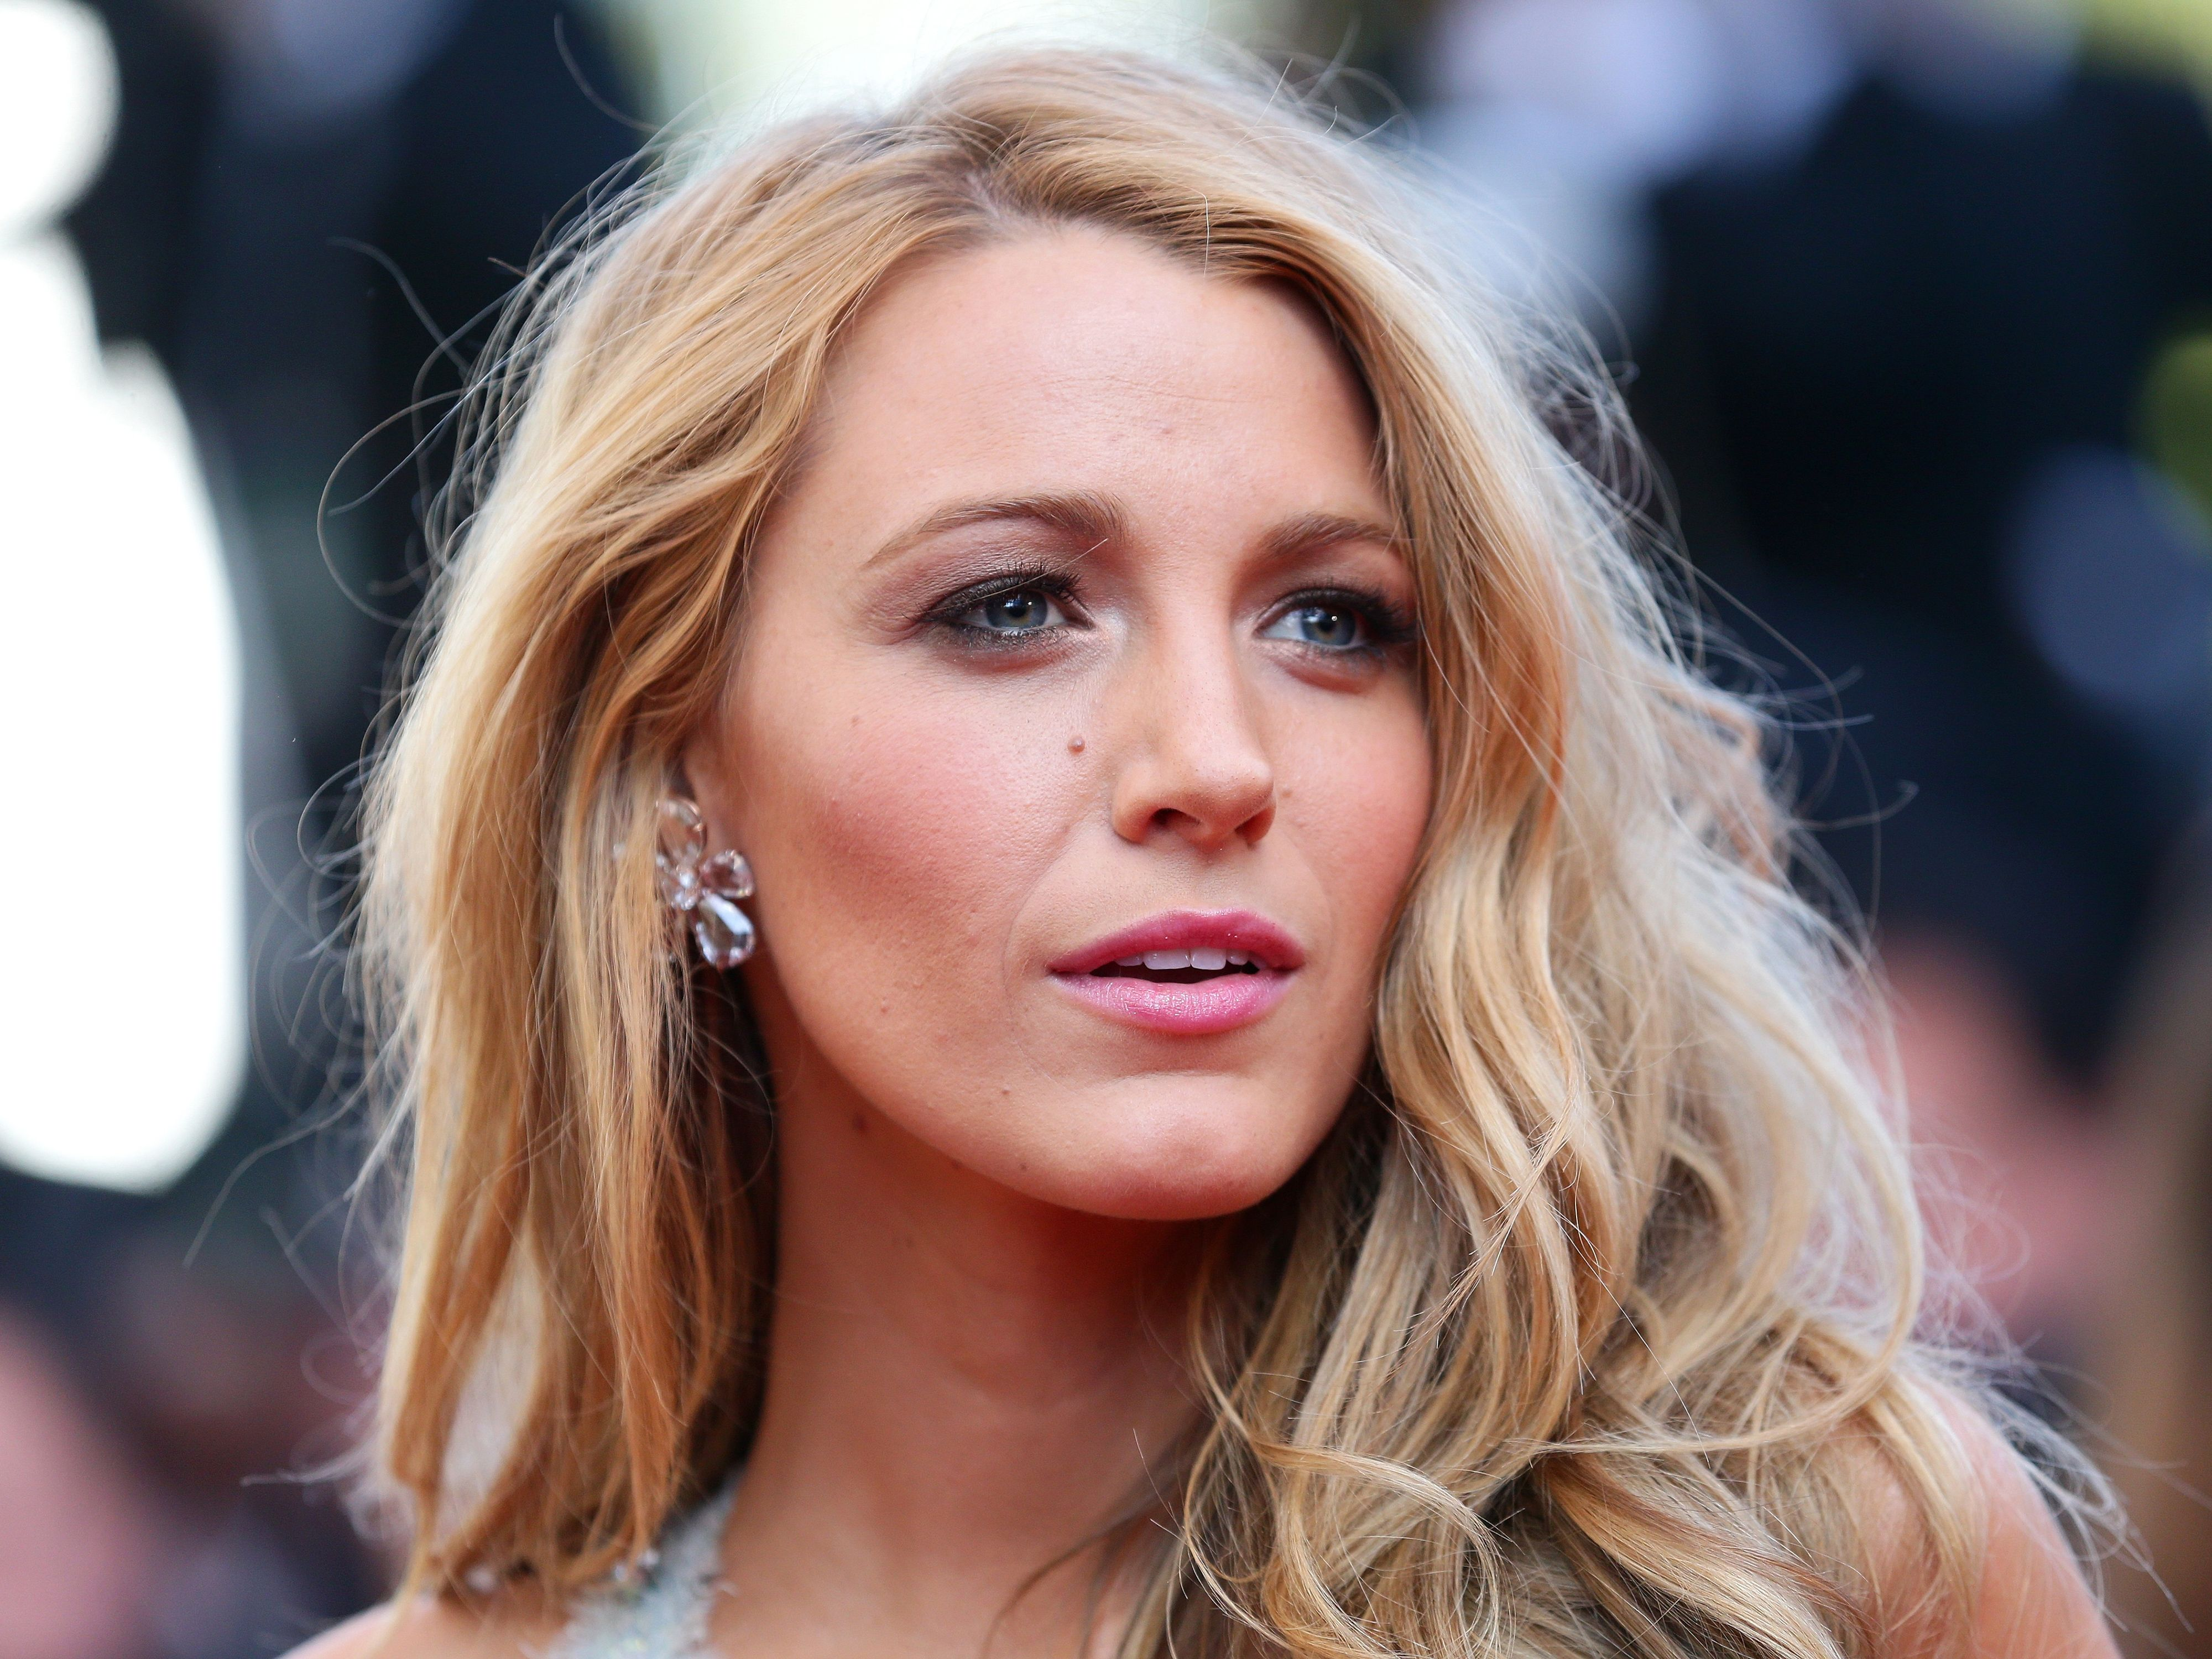 Blake Lively Lob Haircut Blake Lively All I See Is You Premiere